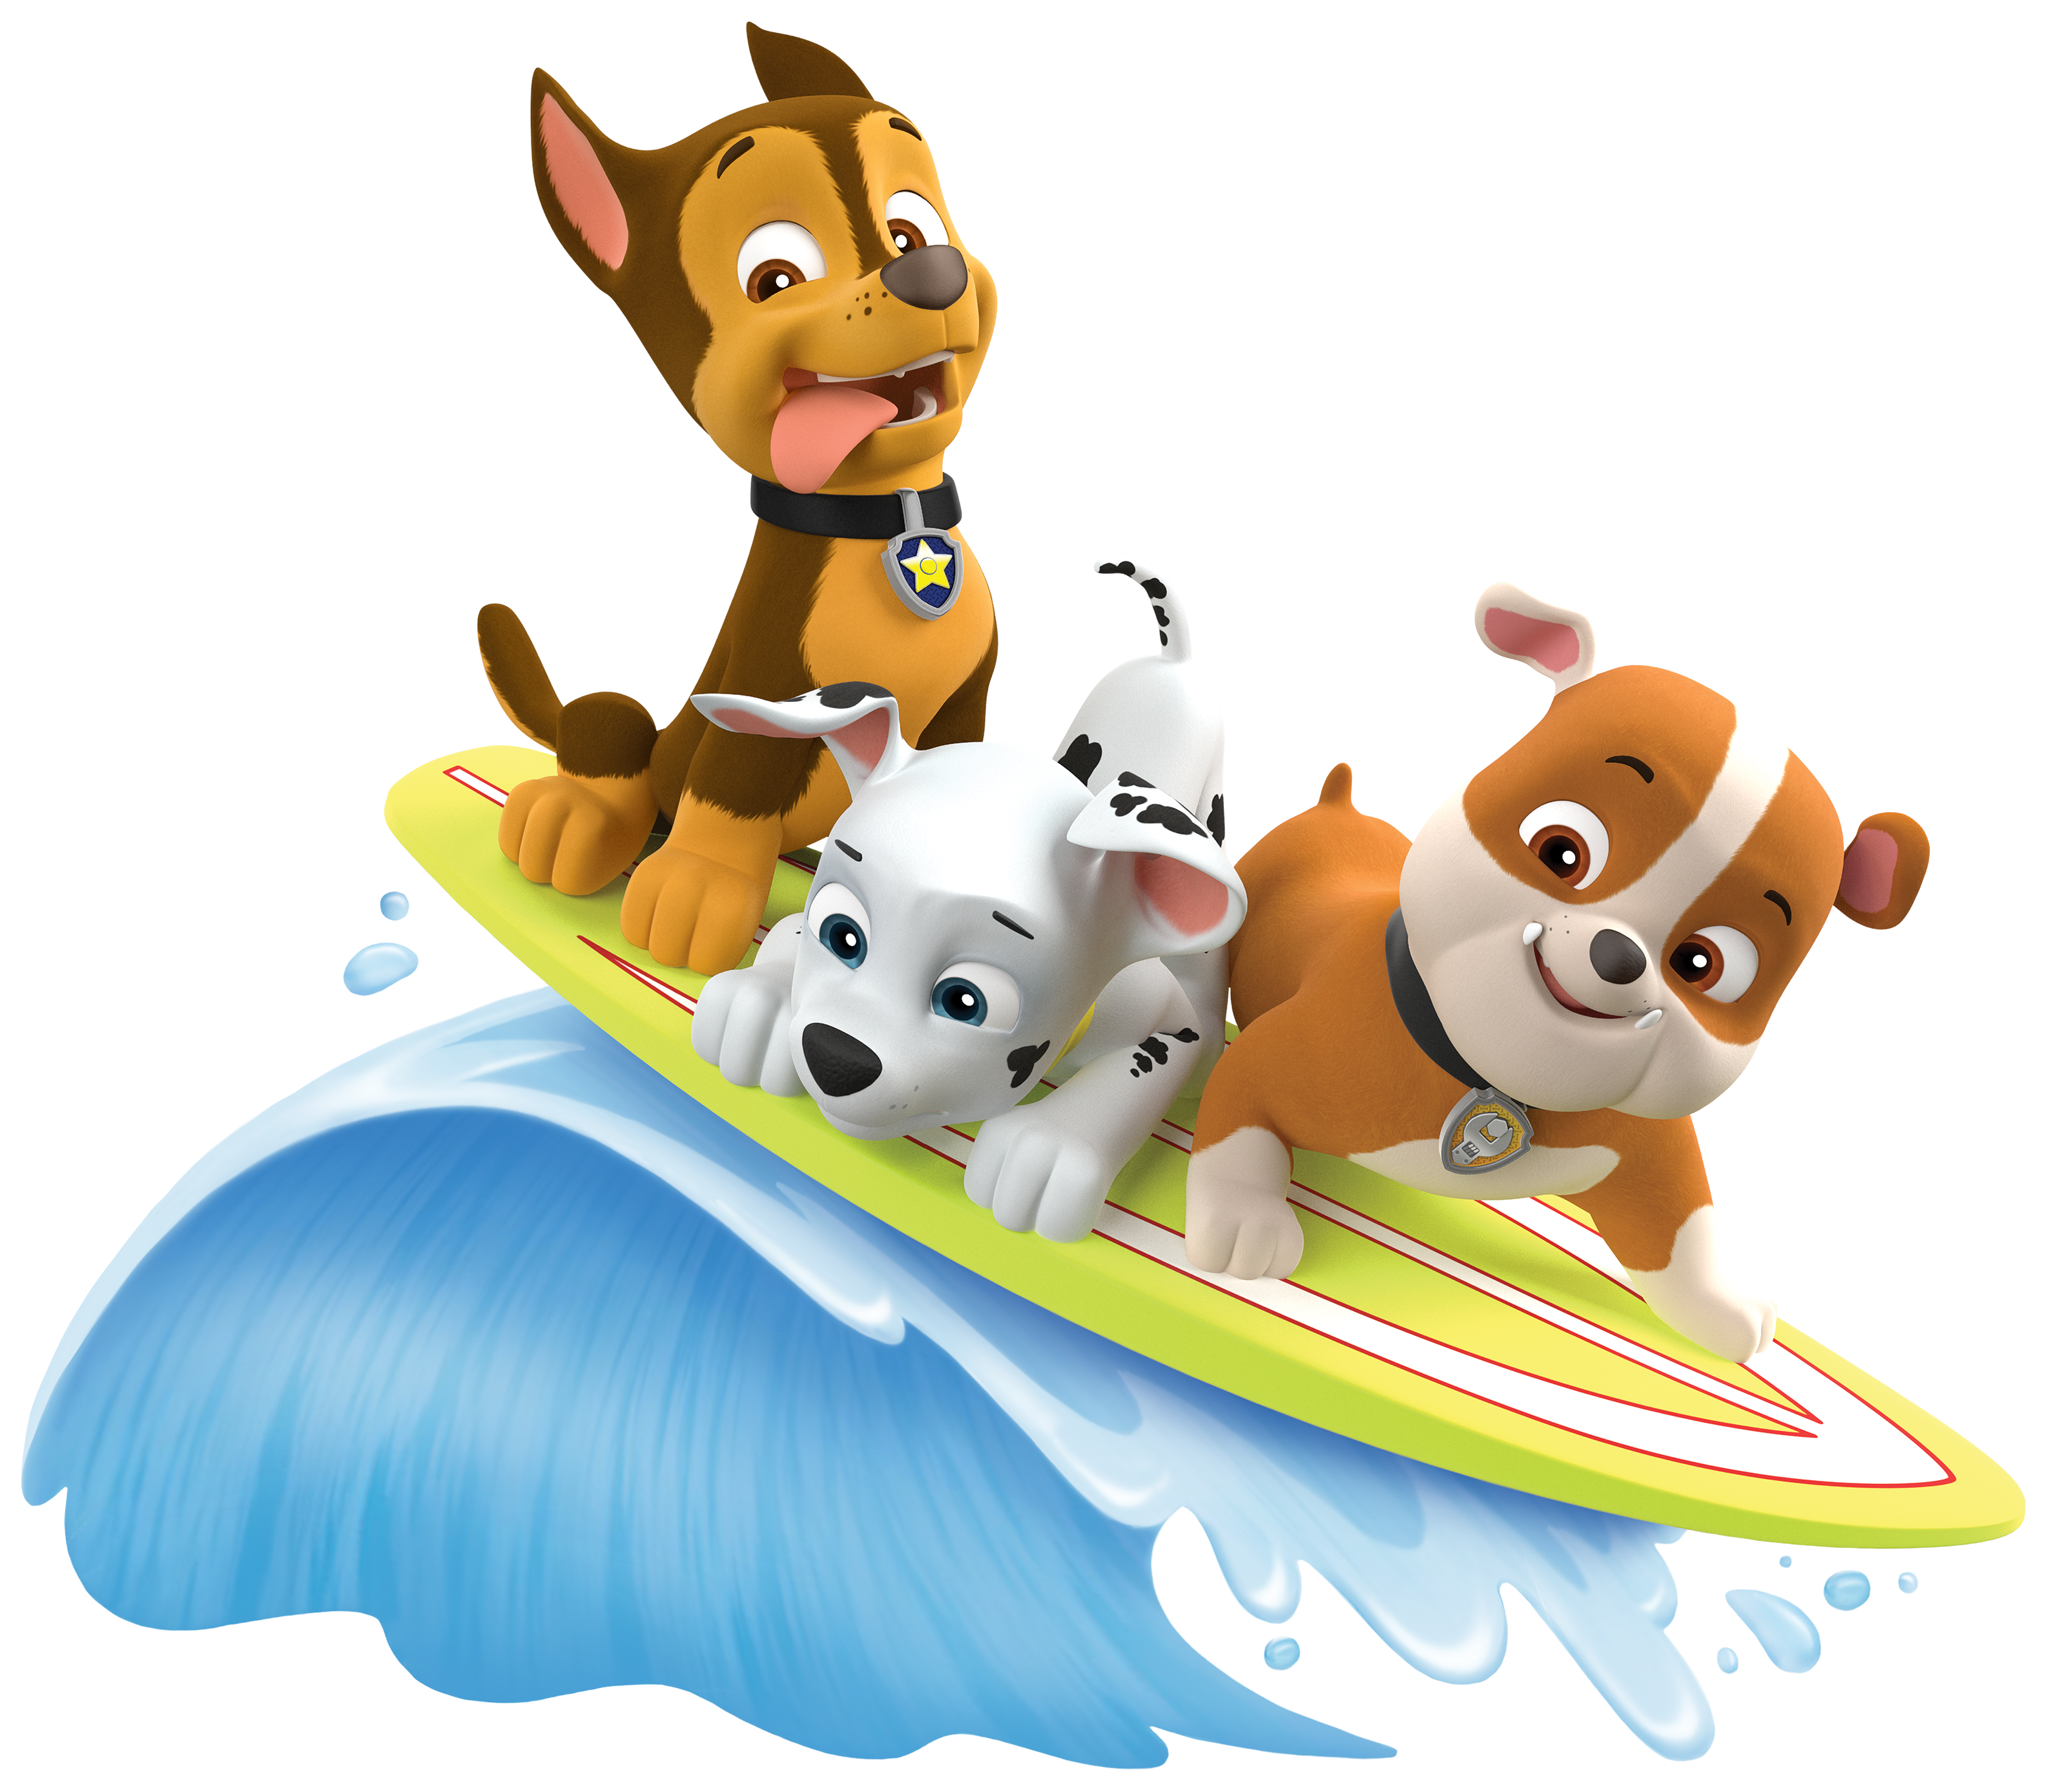 Paw patrol marshall clipart png free stock Image - PAW Patrol Marshall Rubble Chase Summer Surfboard.png | PAW ... png free stock